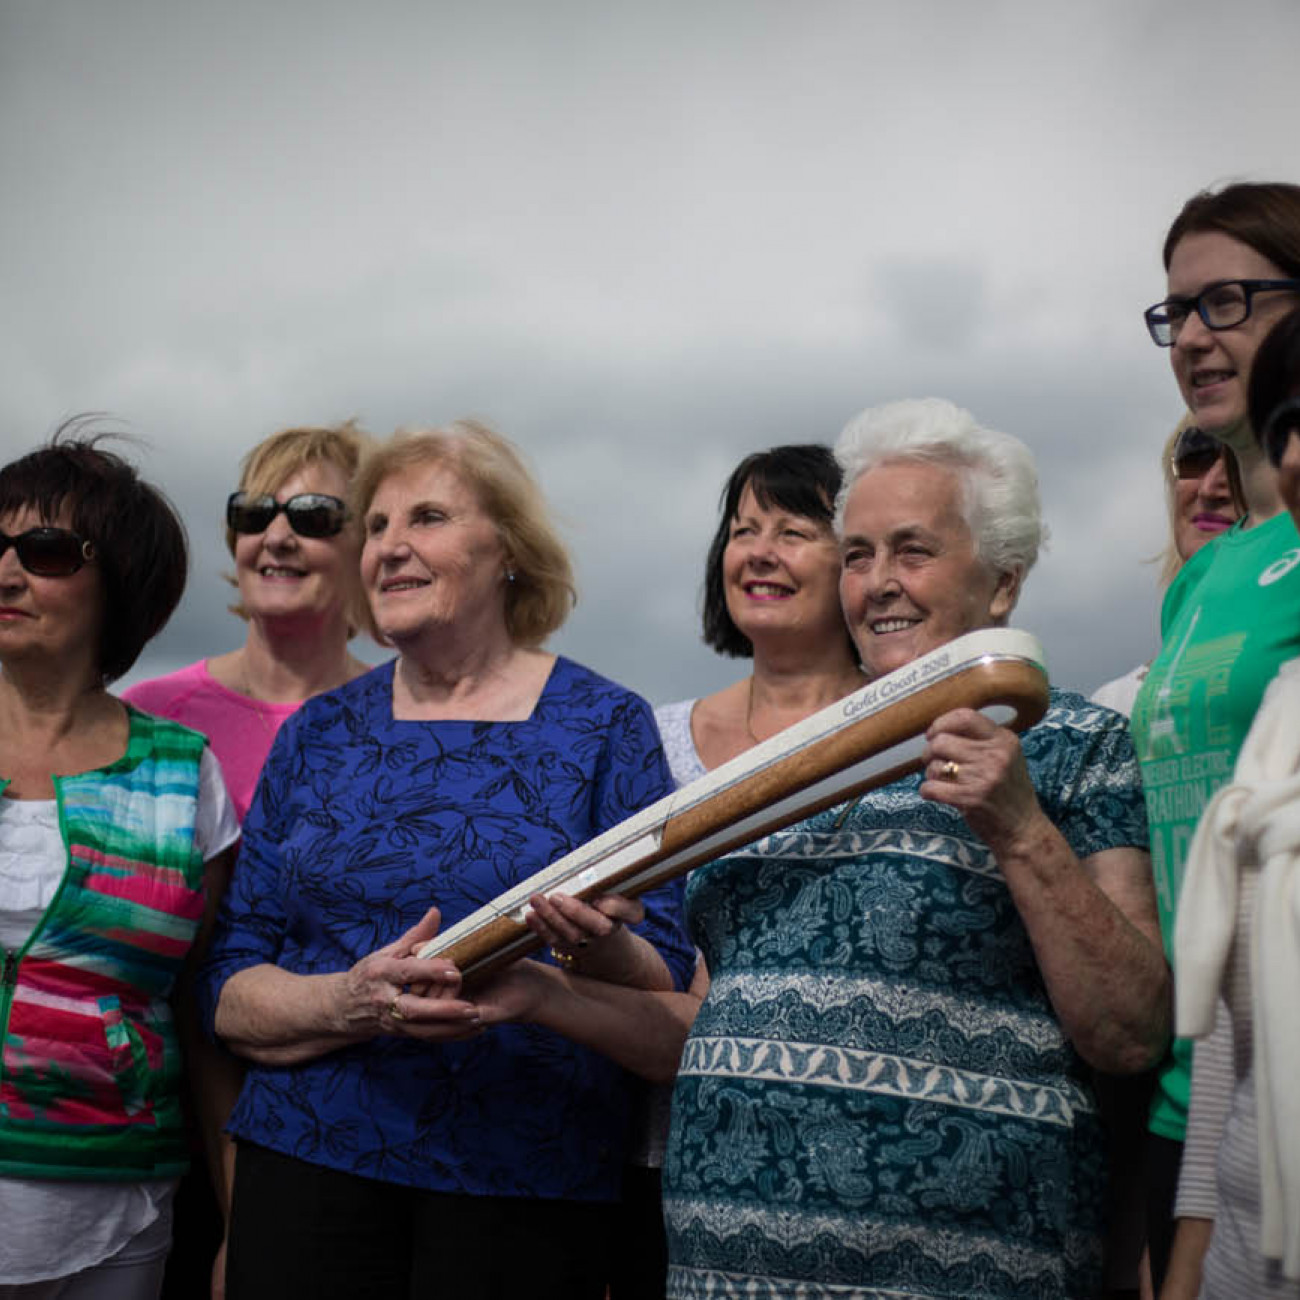 The Queen's Baton was received at St. Colman's Sports Complex, in Newry, in Northern Ireland, on 30 August 2017.